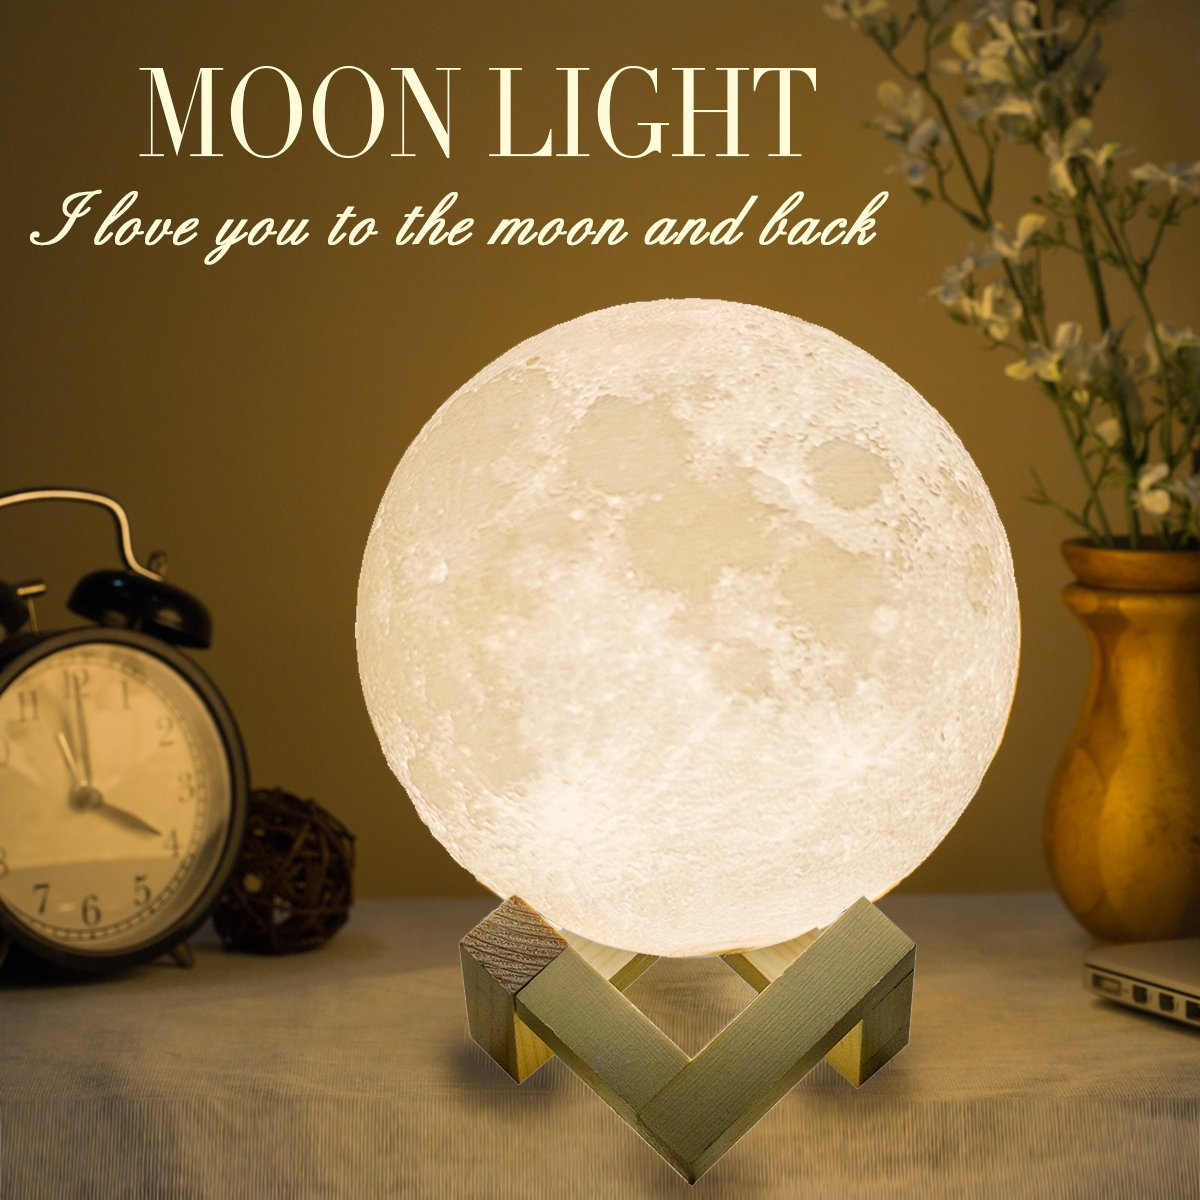 Mydethun Moon Lamp Moon Light Night Light for Kids Gift for Women USB Charging and Touch Control Brightness 3D Printed Warm and Cool White Lunar Lamp(7.1 in Moon lamp with Stand) by Mydethun